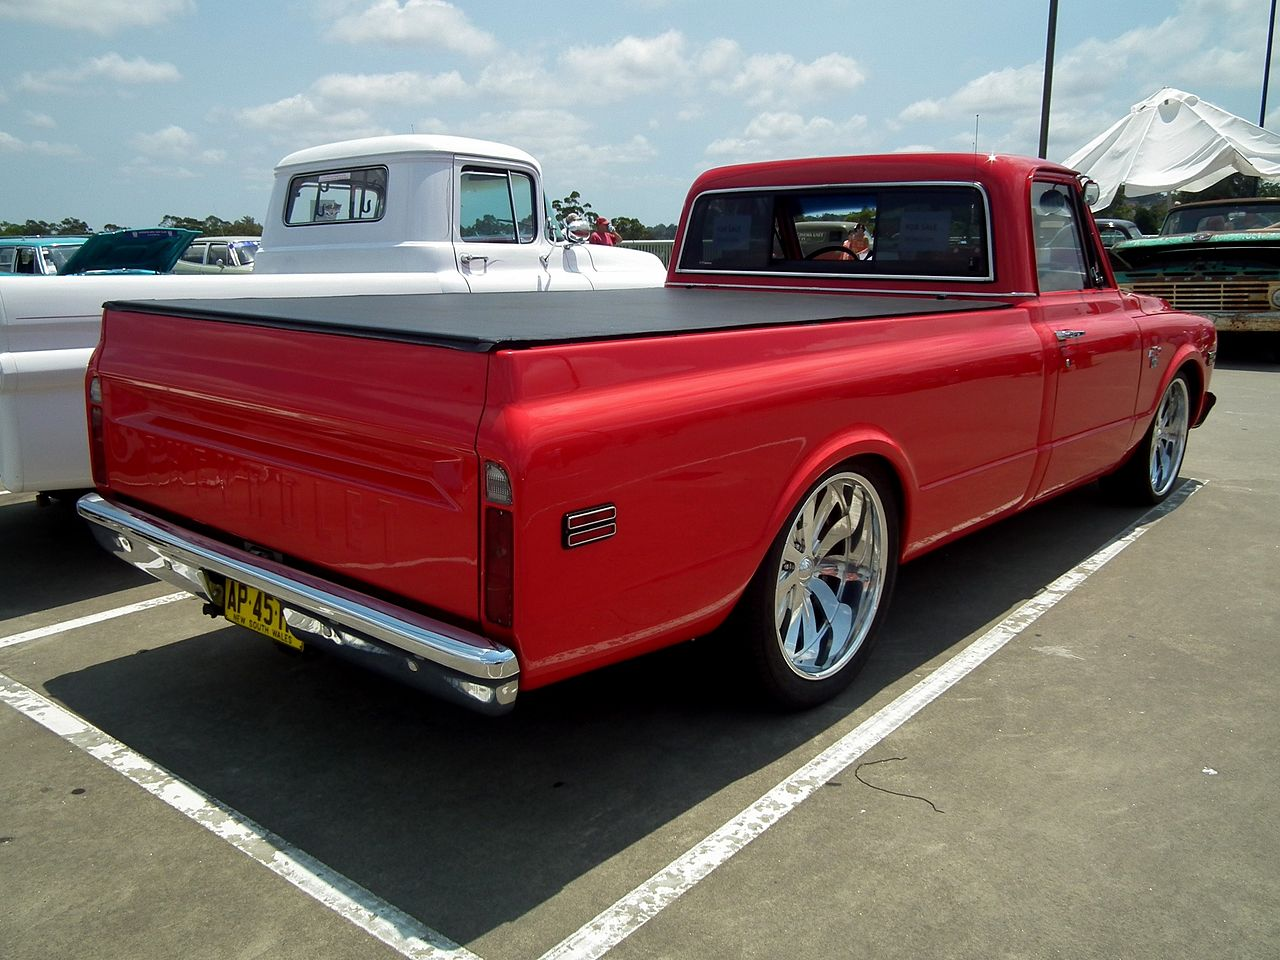 All Chevy chevy c10 wiki : File:1968 Chevrolet C-10 pickup (12403914435).jpg - Wikimedia Commons